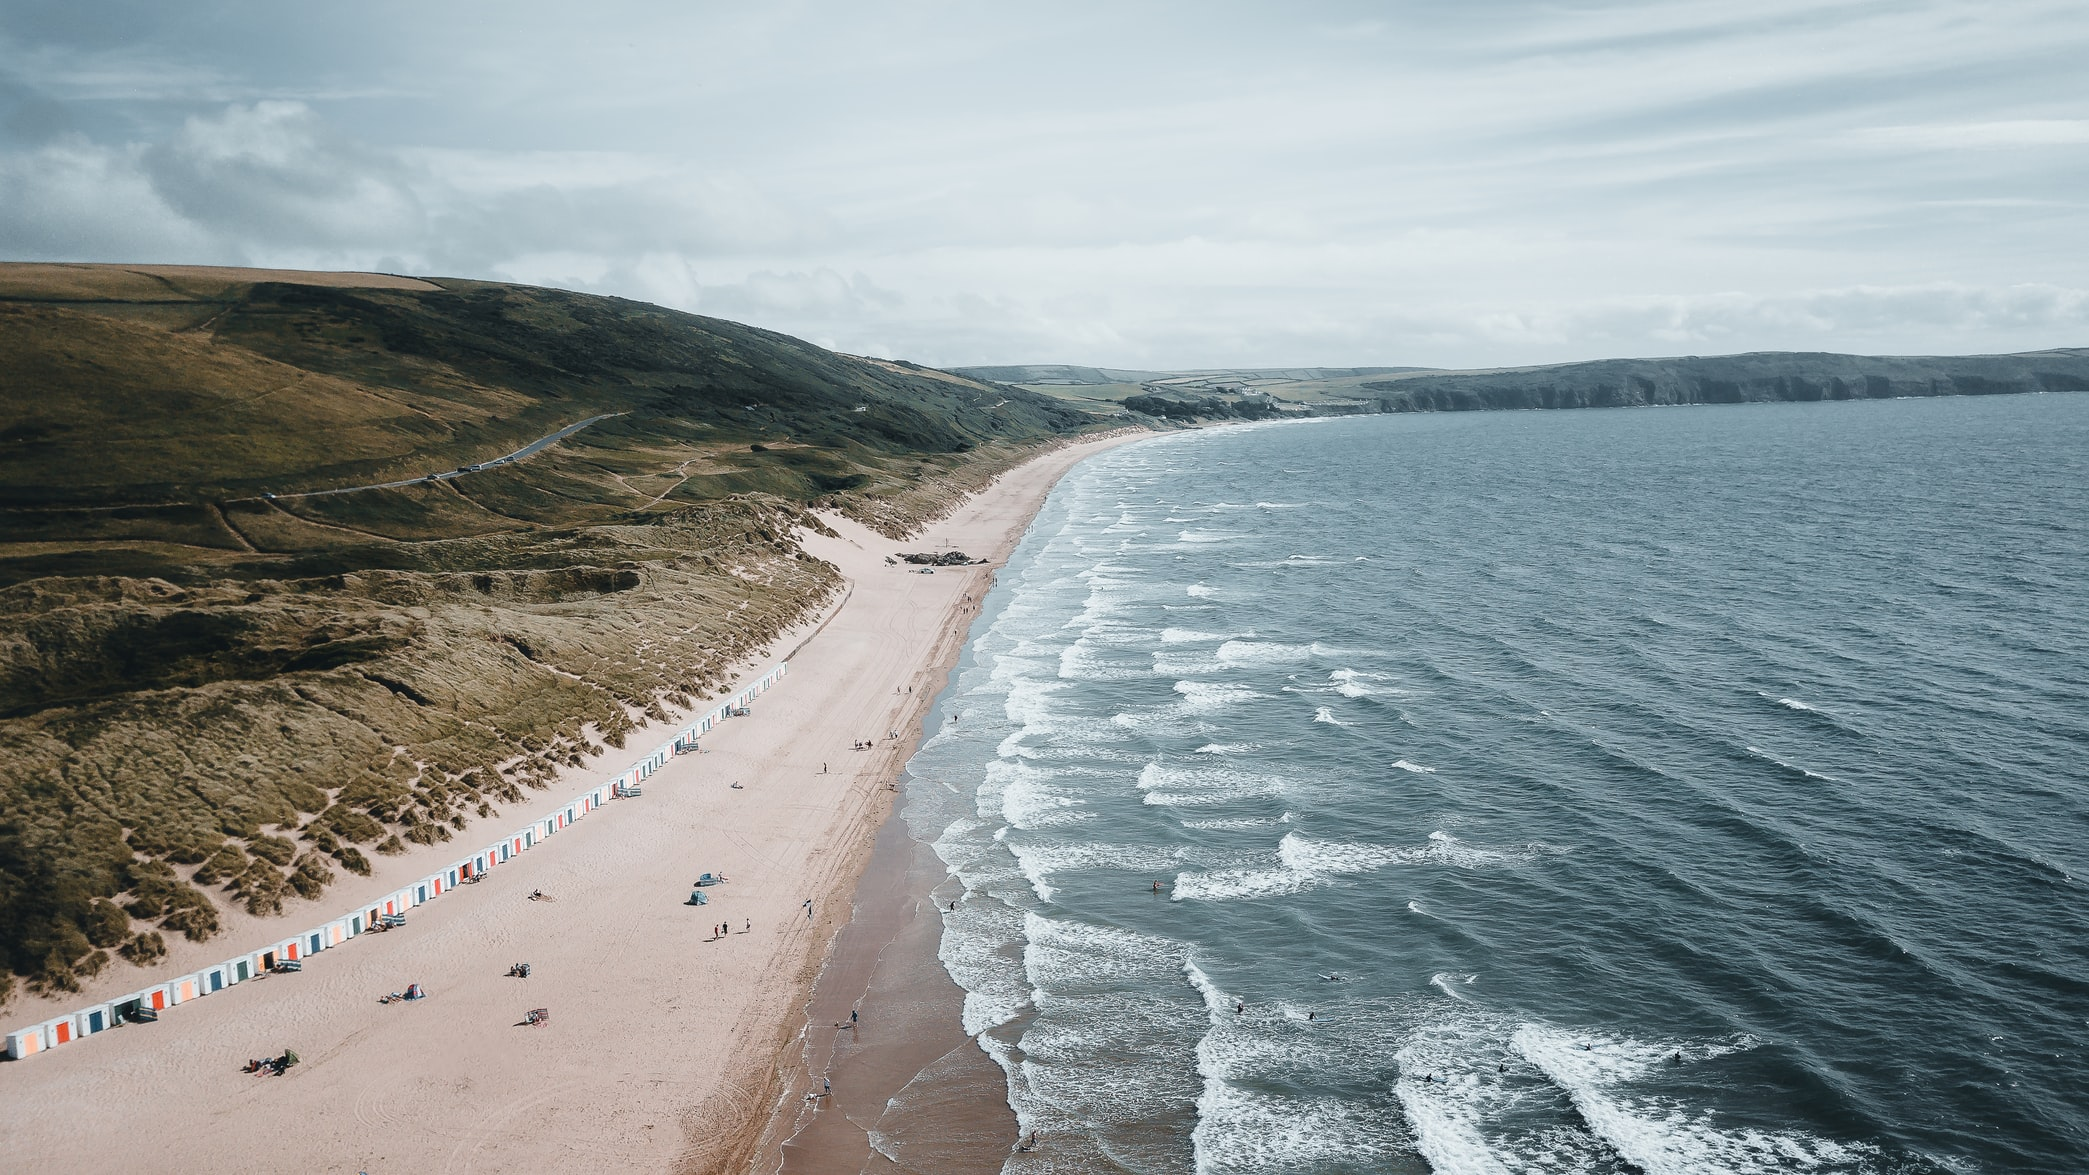 A stretch of beach at Woolacombe